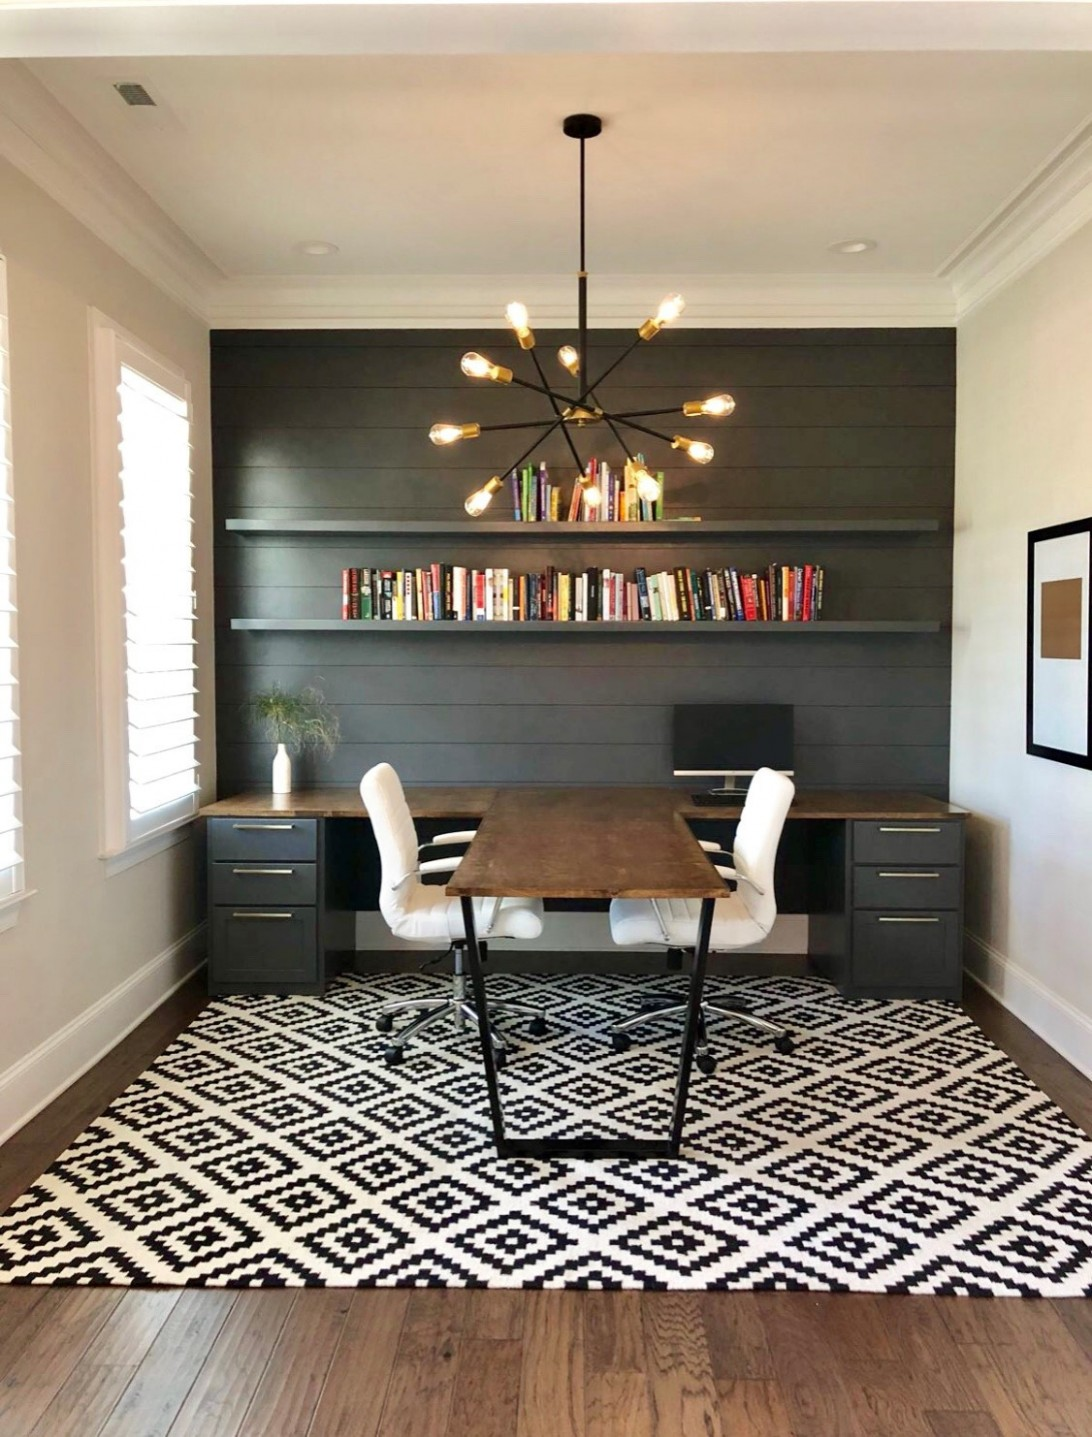 12 Beautiful Home Office Pictures & Ideas November 12  Houzz - Home Office Lighting Ideas